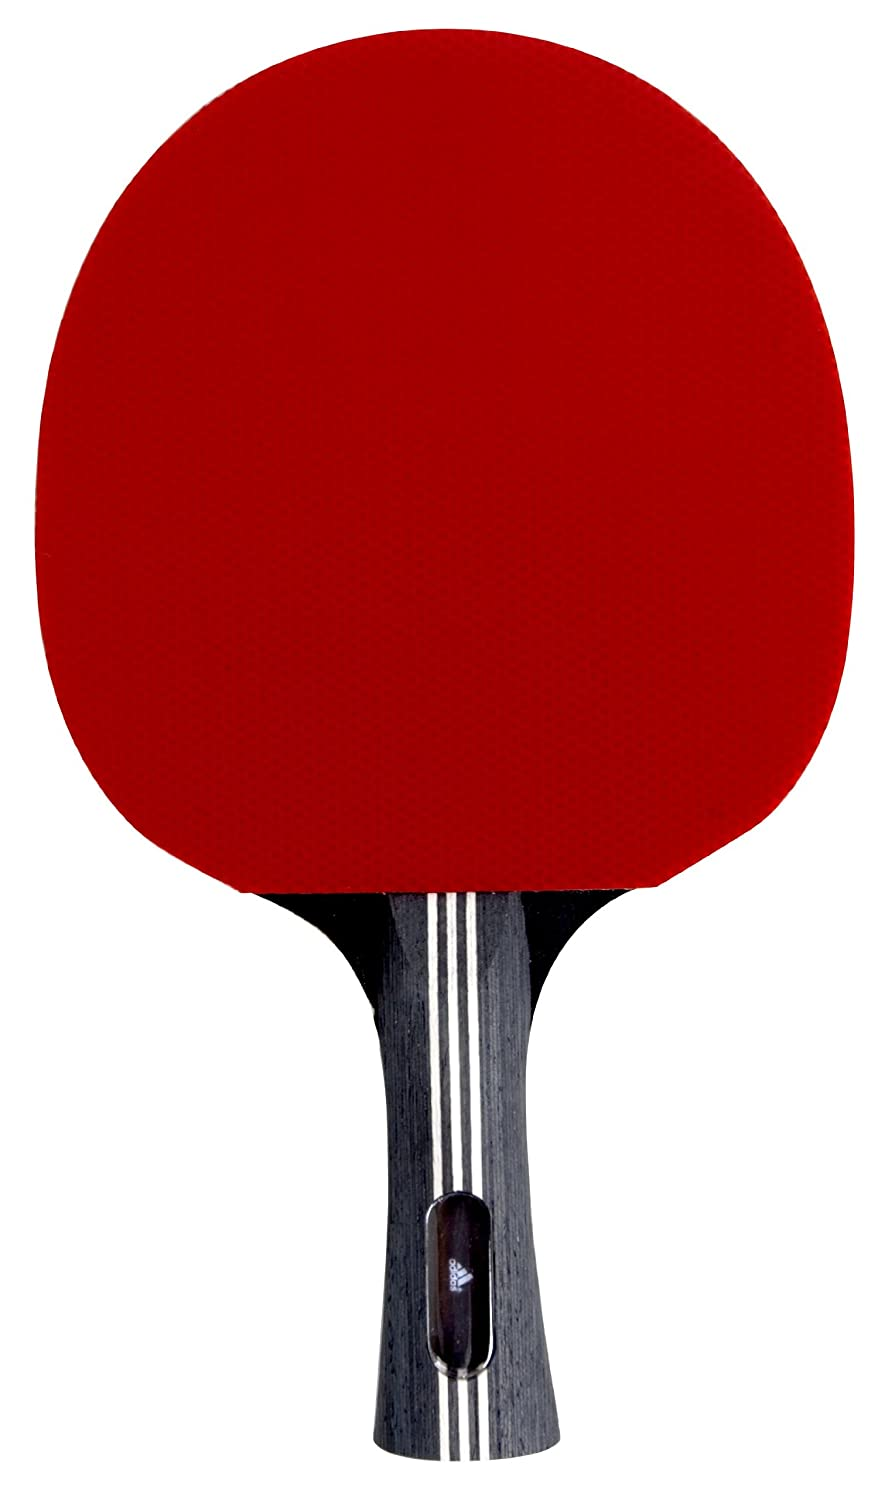 adidas Tour (Carbon) Table Tennis Bat - Black/Red AGF-10404 471015